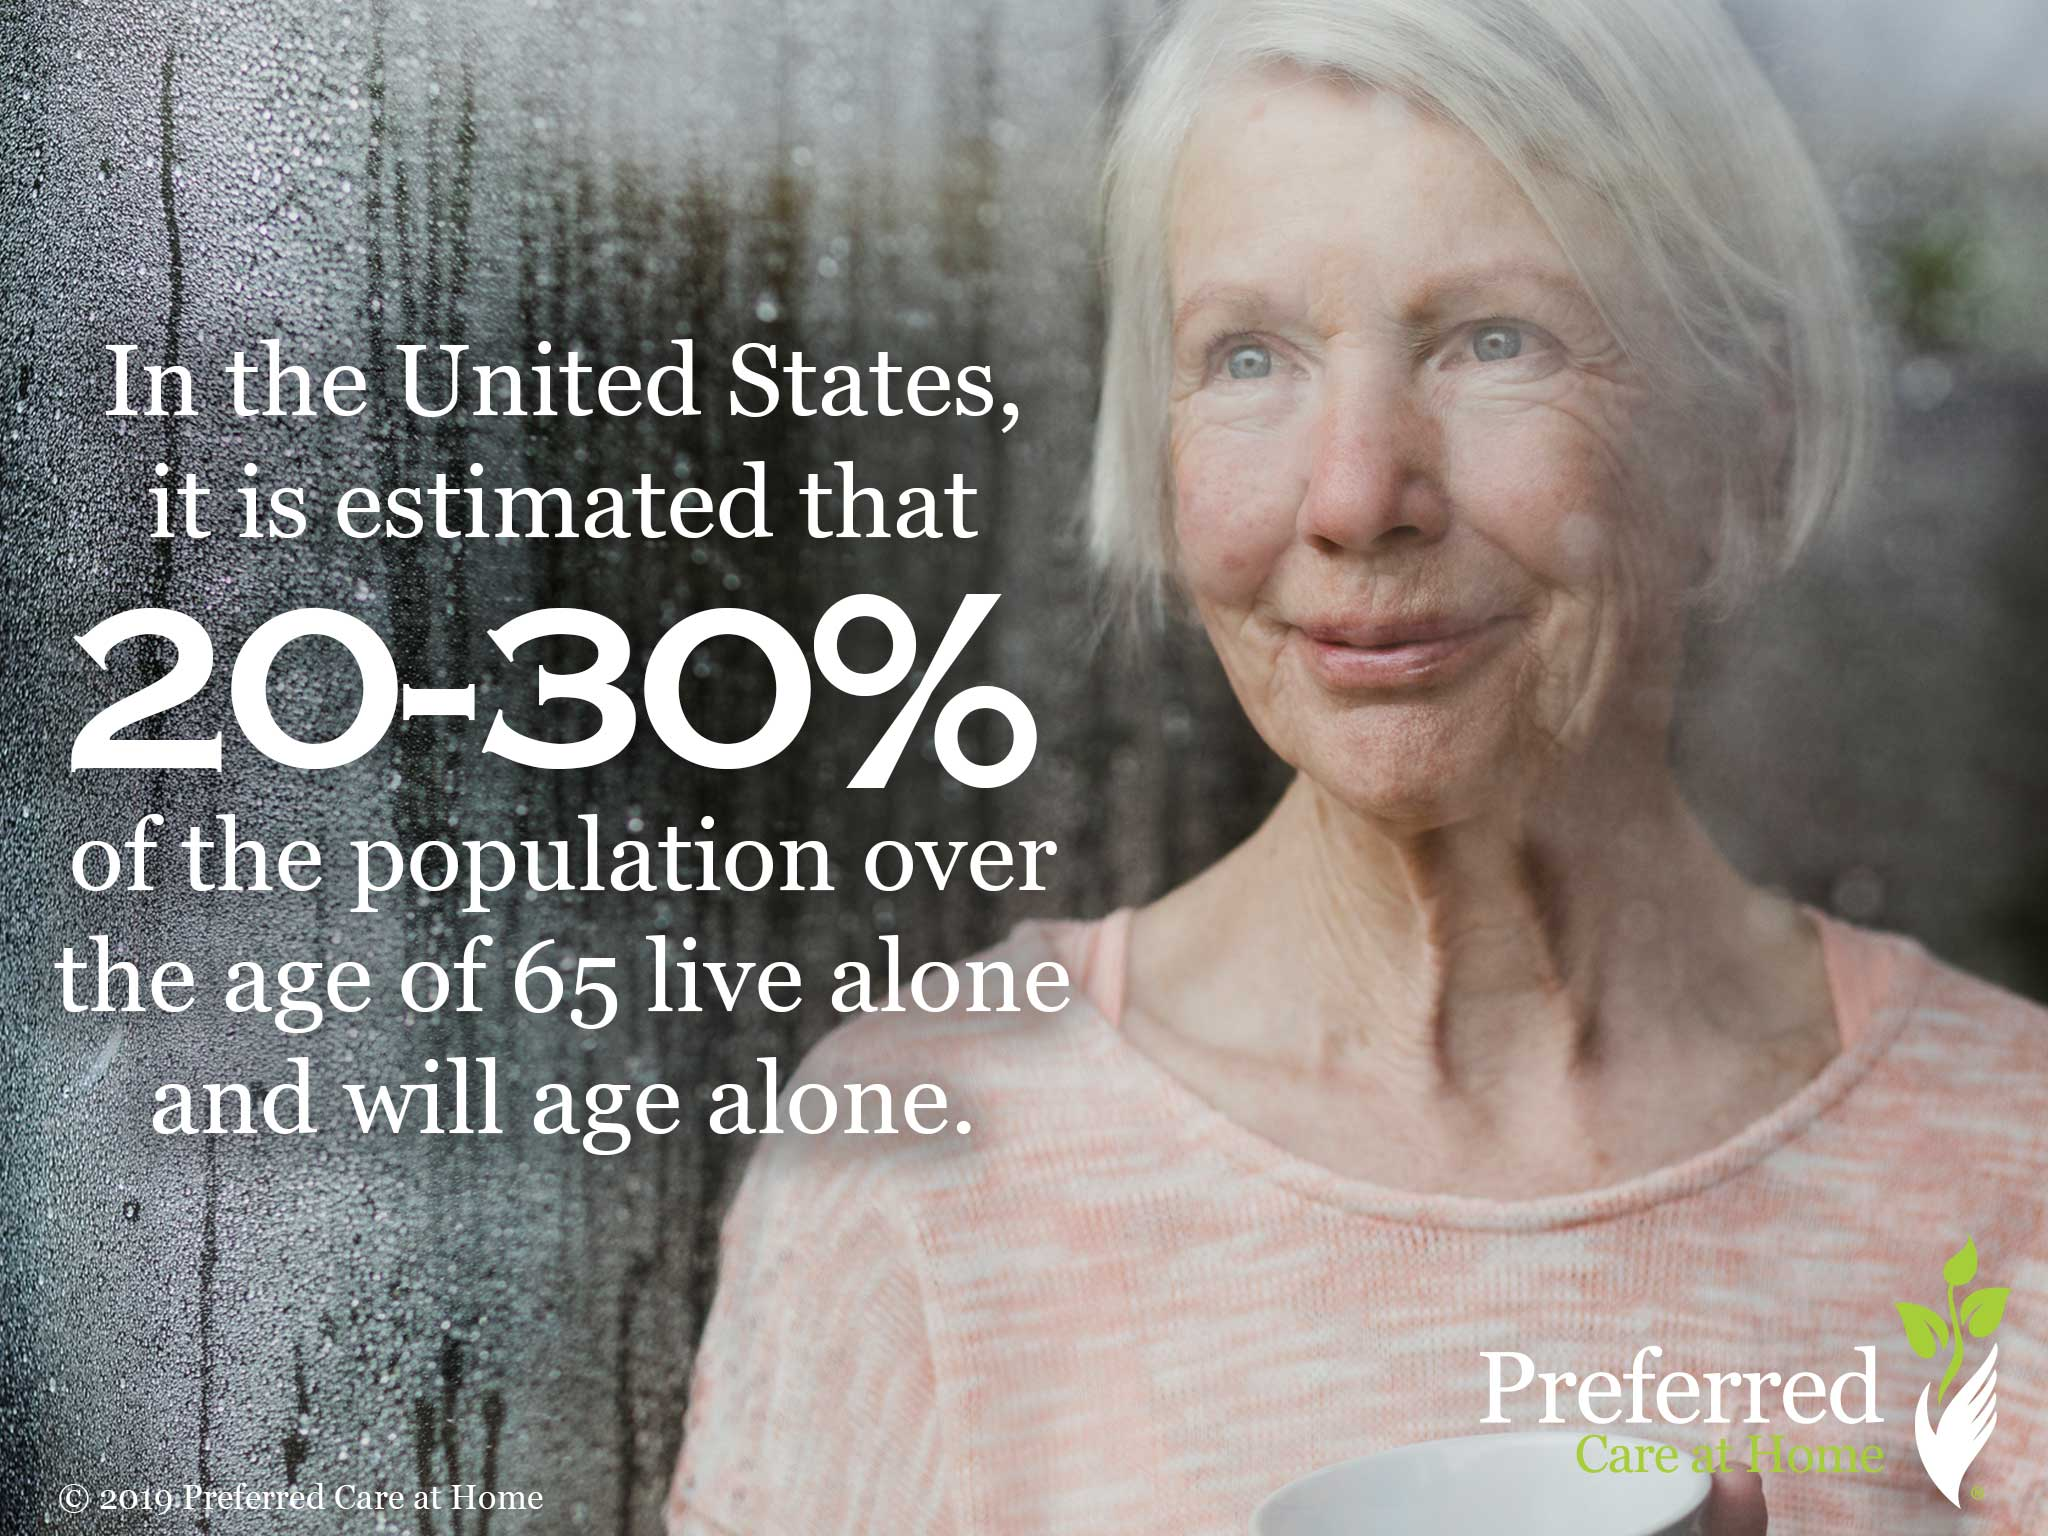 Are You Planning on Aging Alone?